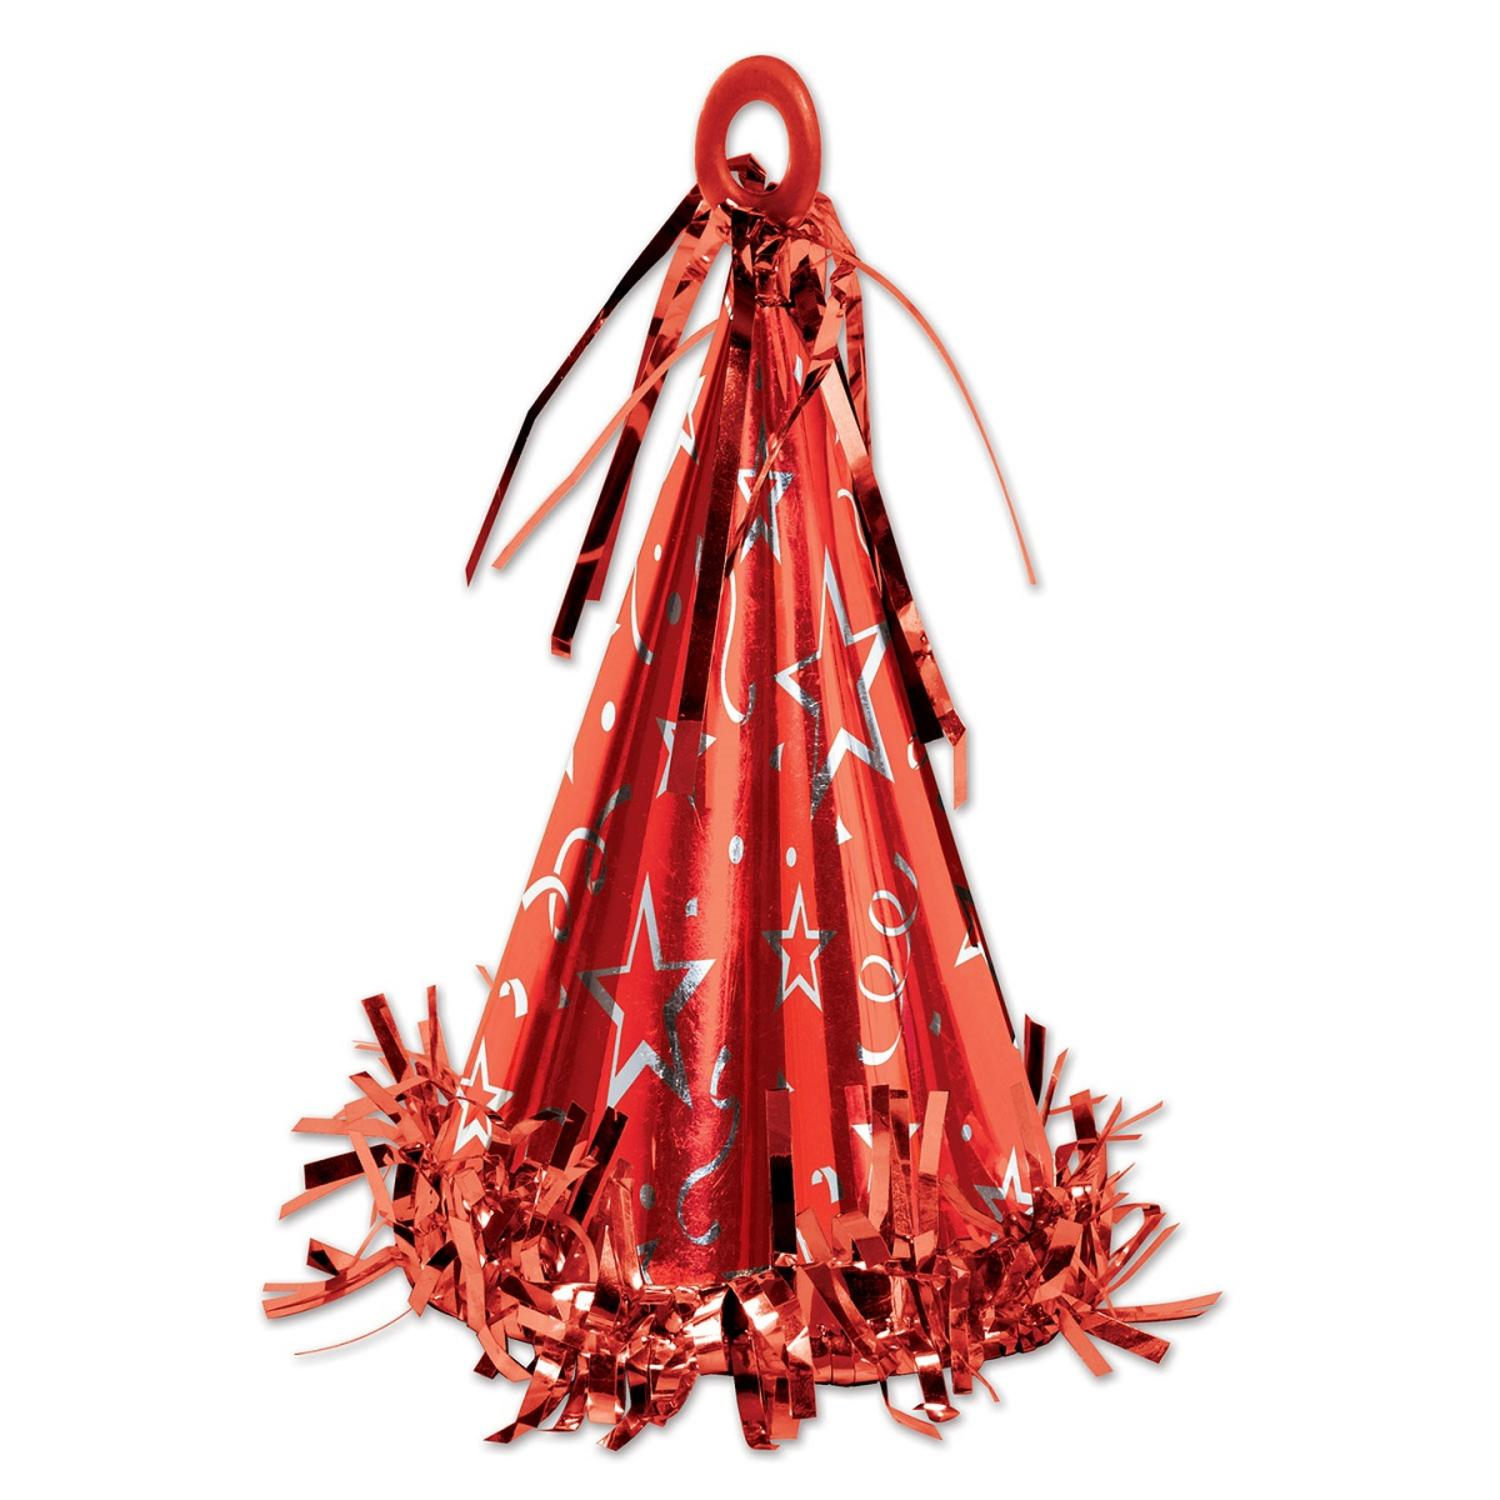 Club Pack of 12 Red Party Hat Balloon Weight Decorative Birthday Centerpieces  6 oz.